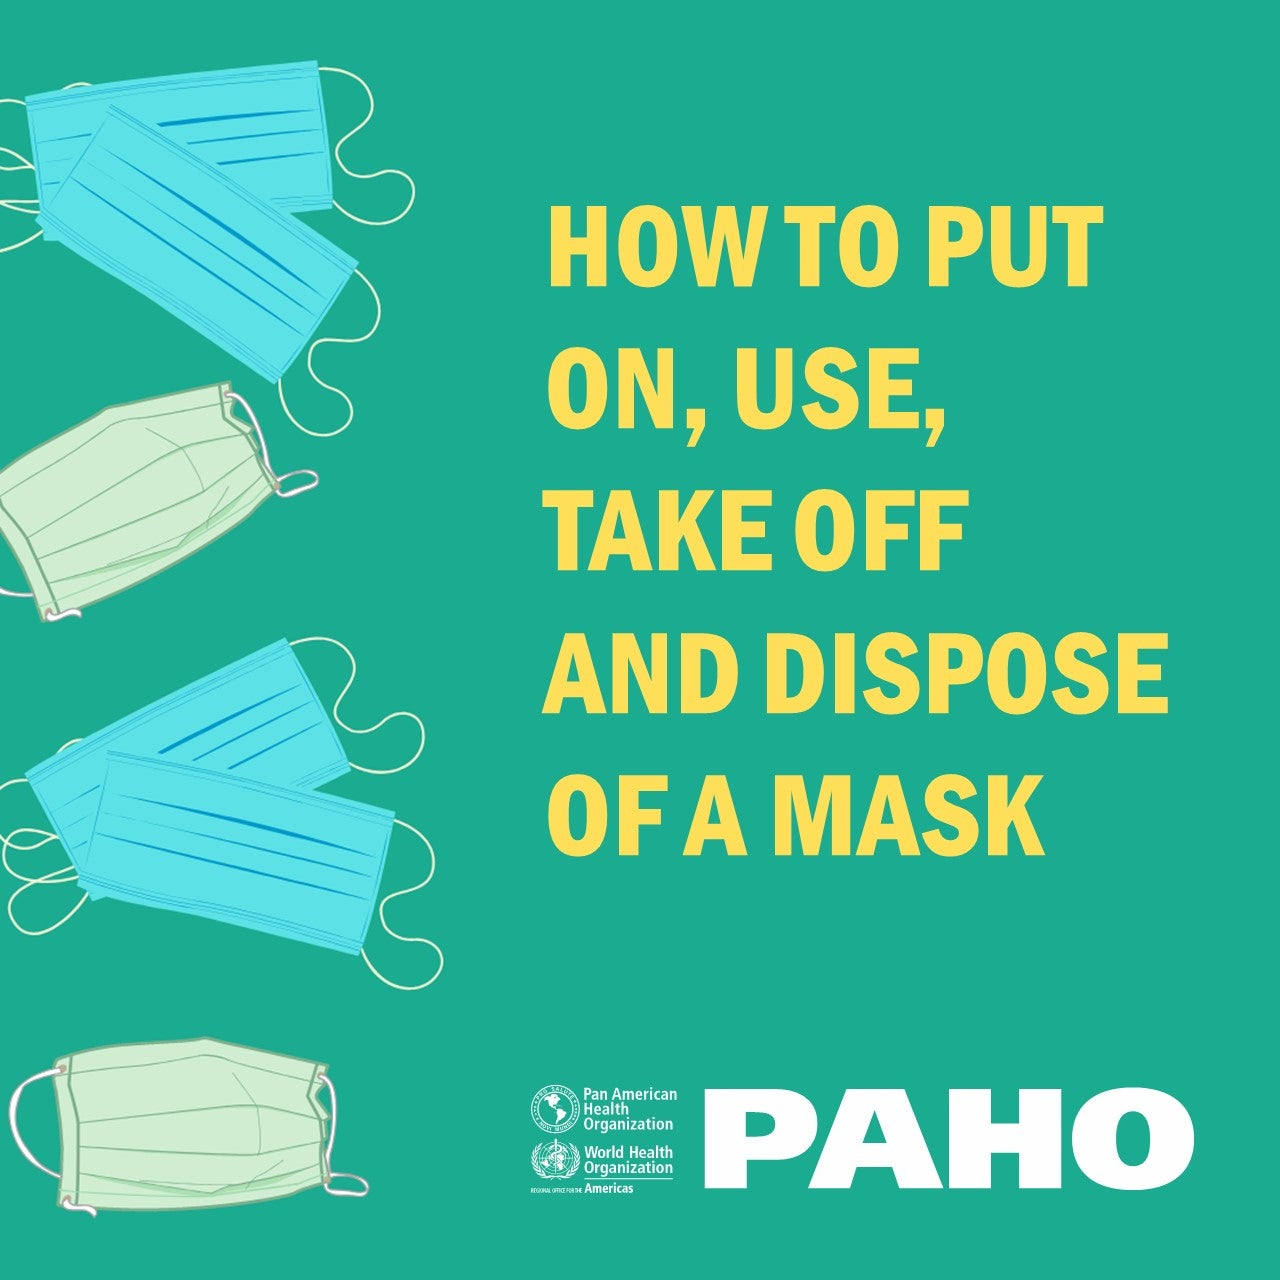 Social Media Postcard: When to use a mask (2)